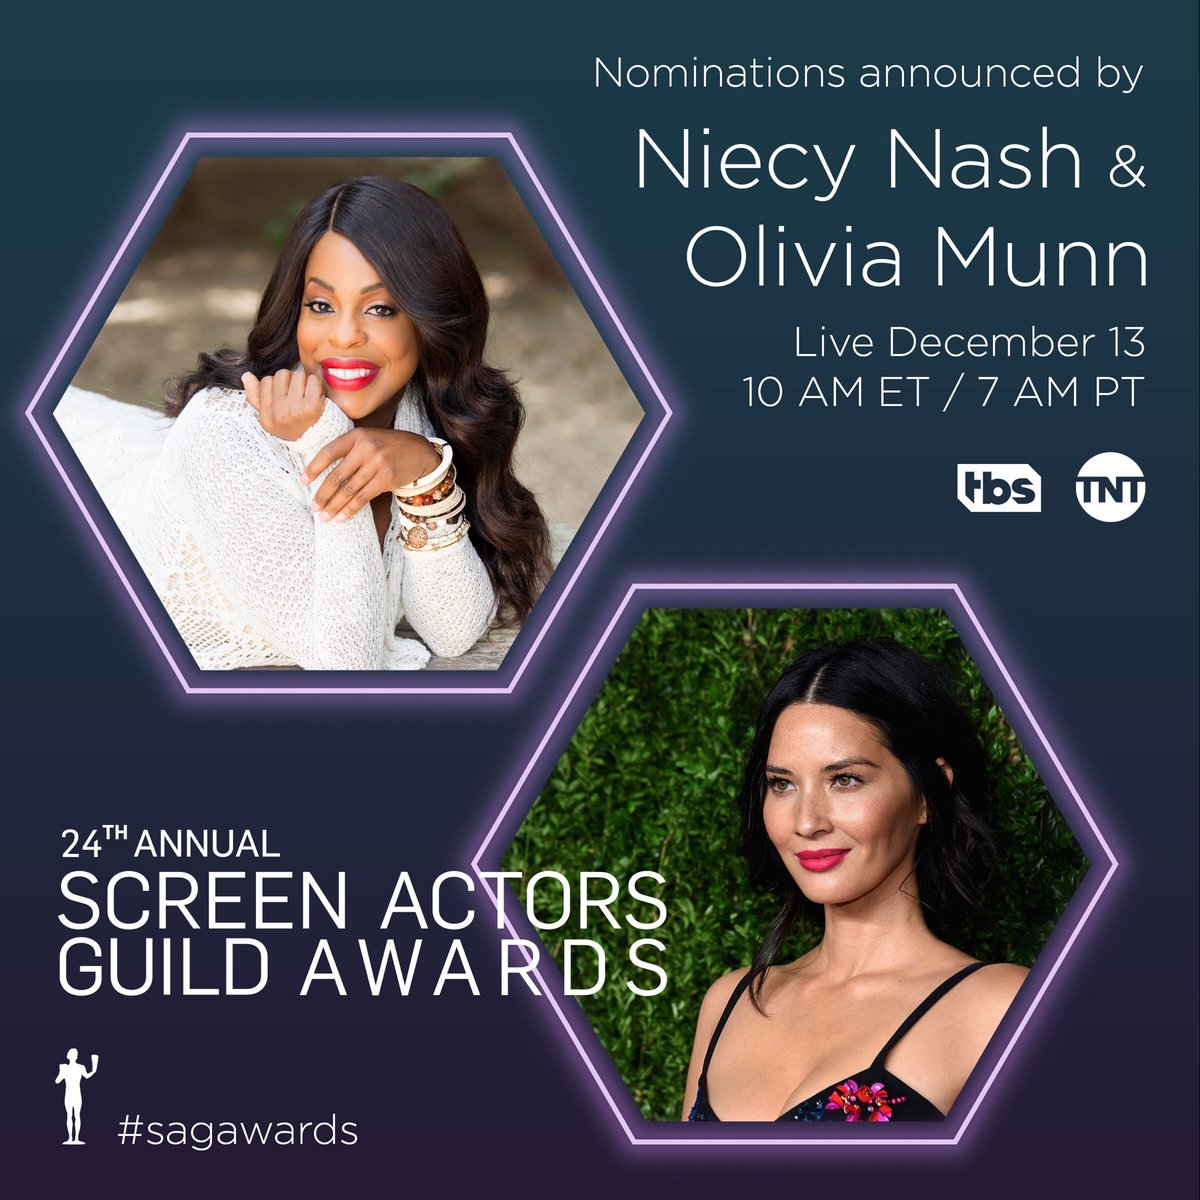 Excited to present #sagawards nominations with @niecynash on live Dec. 13 on @tntdrama & @tbsnetwork ???????????????? https://t.co/1sisyAHpKj